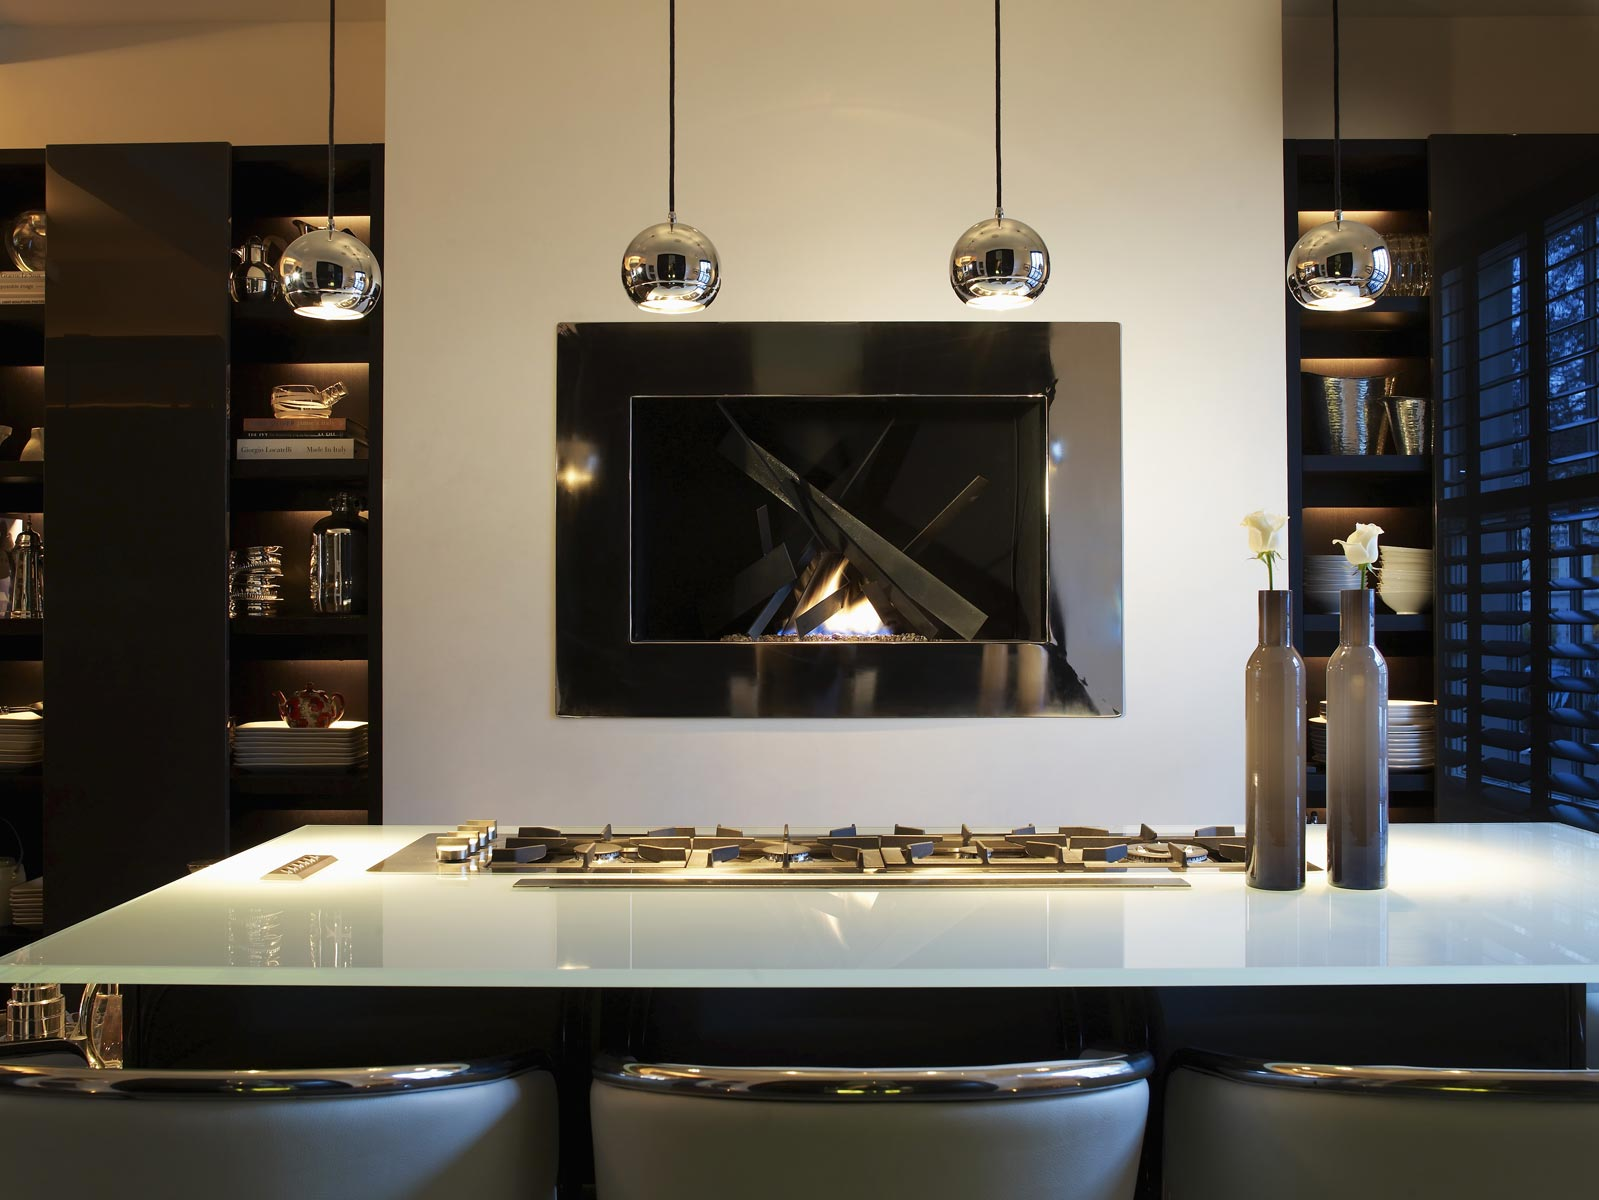 Modern Kitchen Design At The Town House London Kelly Hoppen Top 10 Ideas